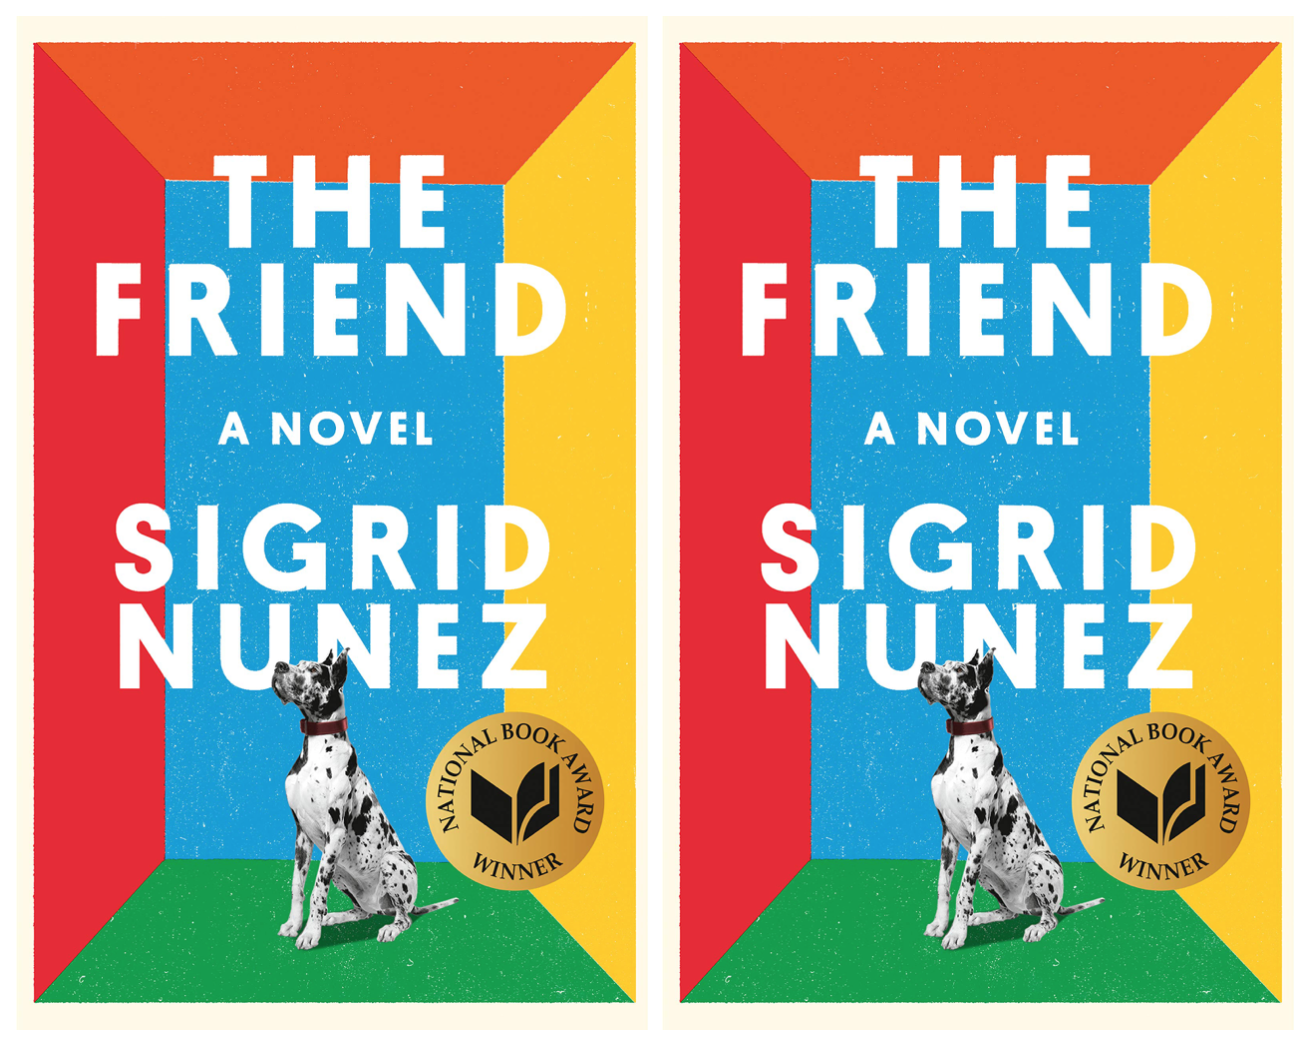 Cover art for The Friend by Sigrid Nunez